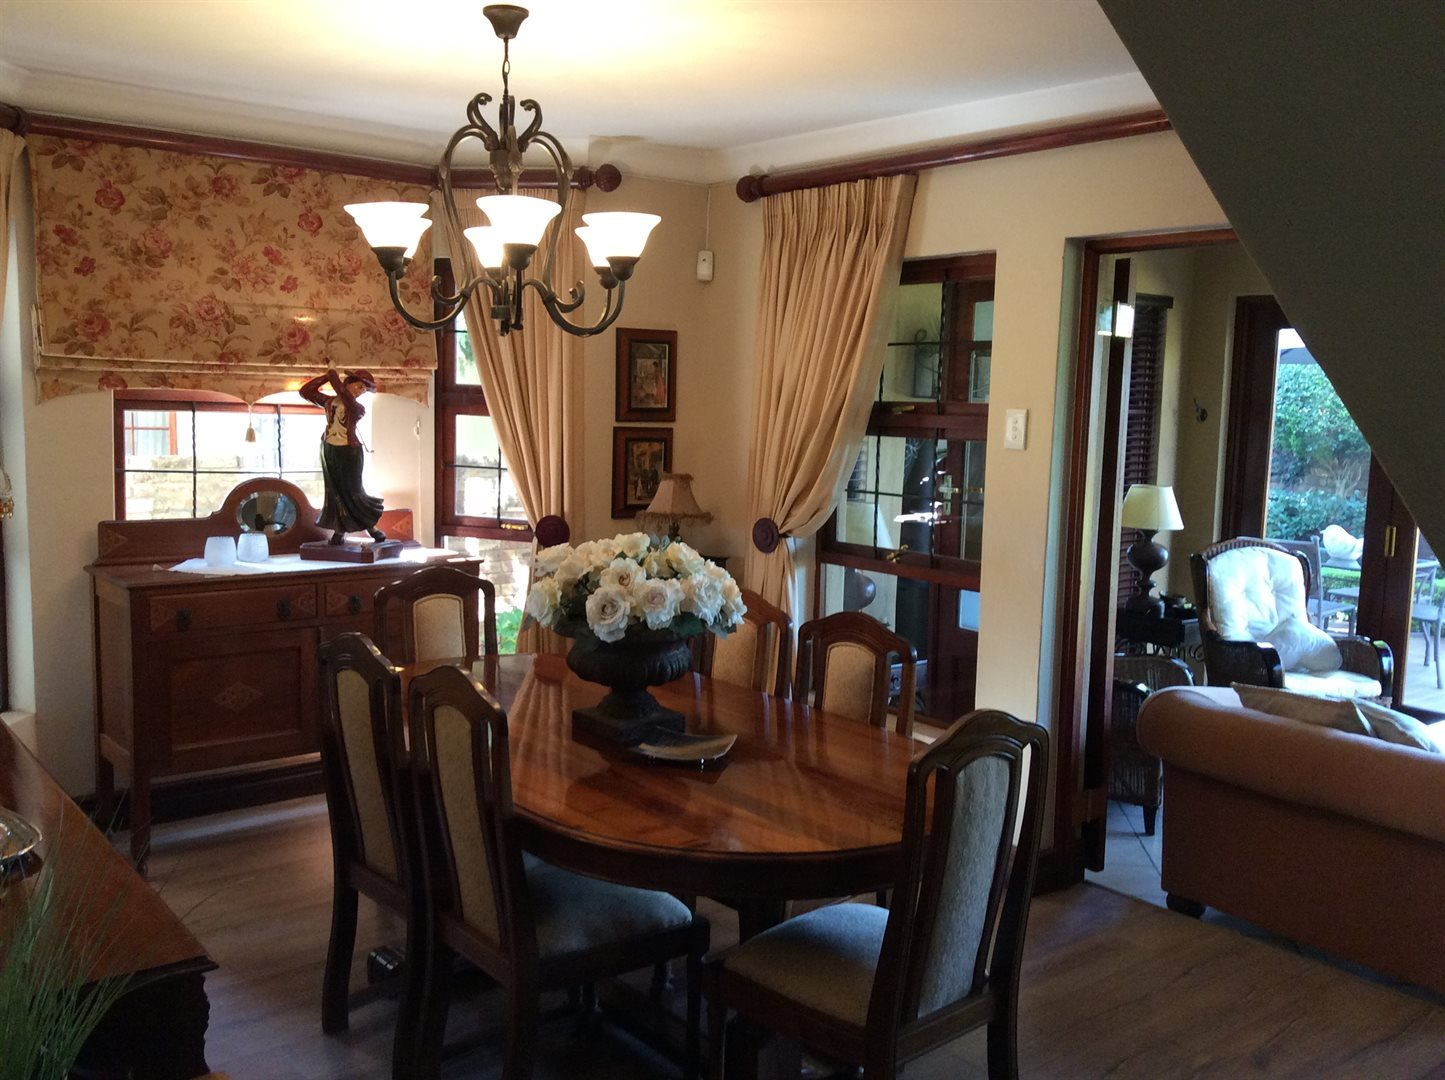 3 Bedroom House for sale in Montana Park ENT0074858 : photo#14